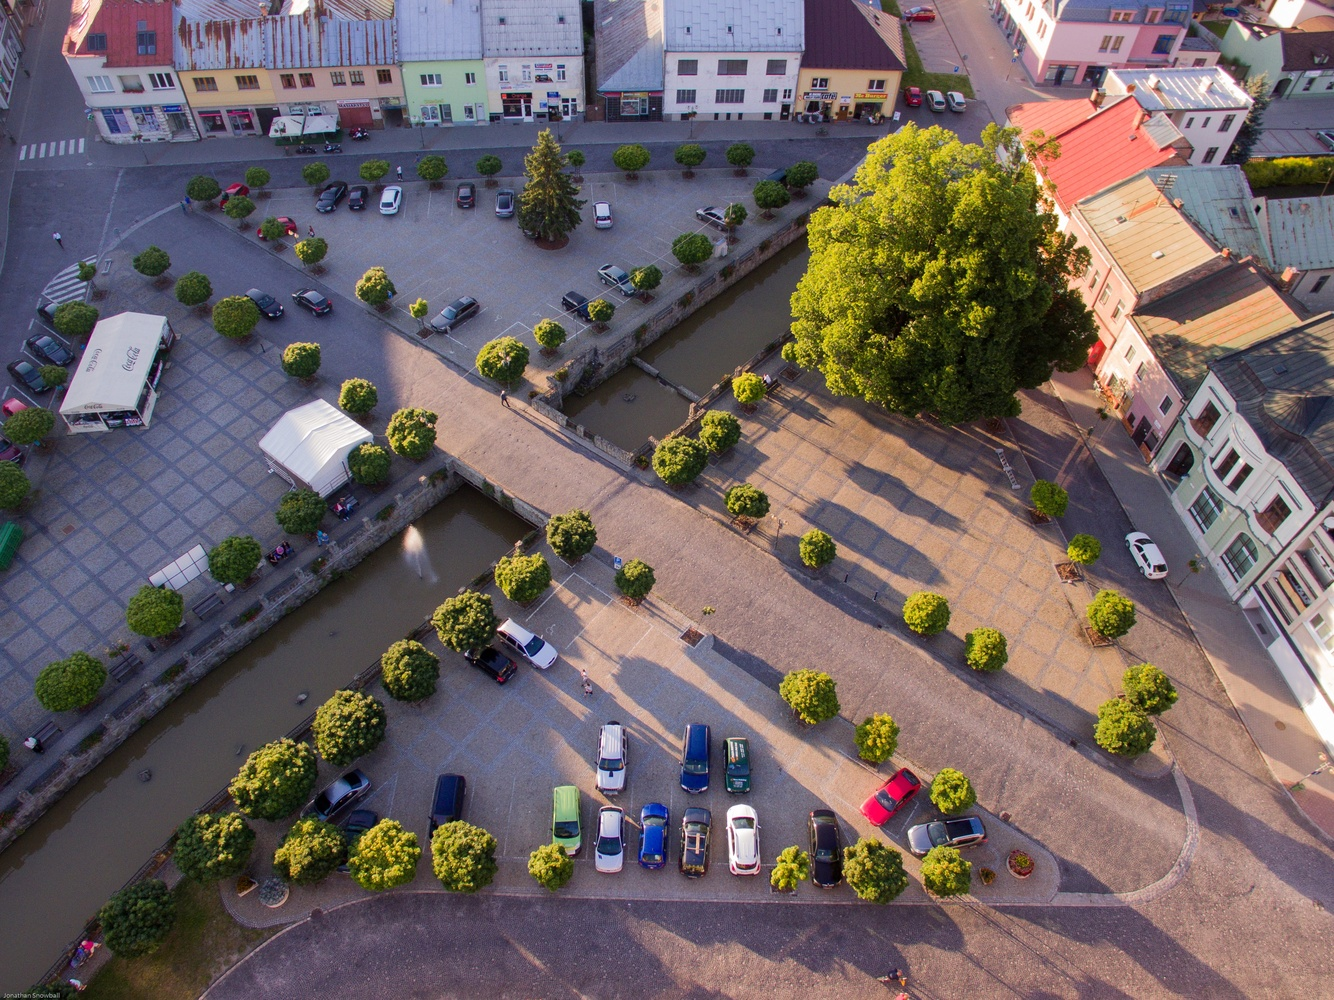 Aerial view of Slovak town center by jon snow